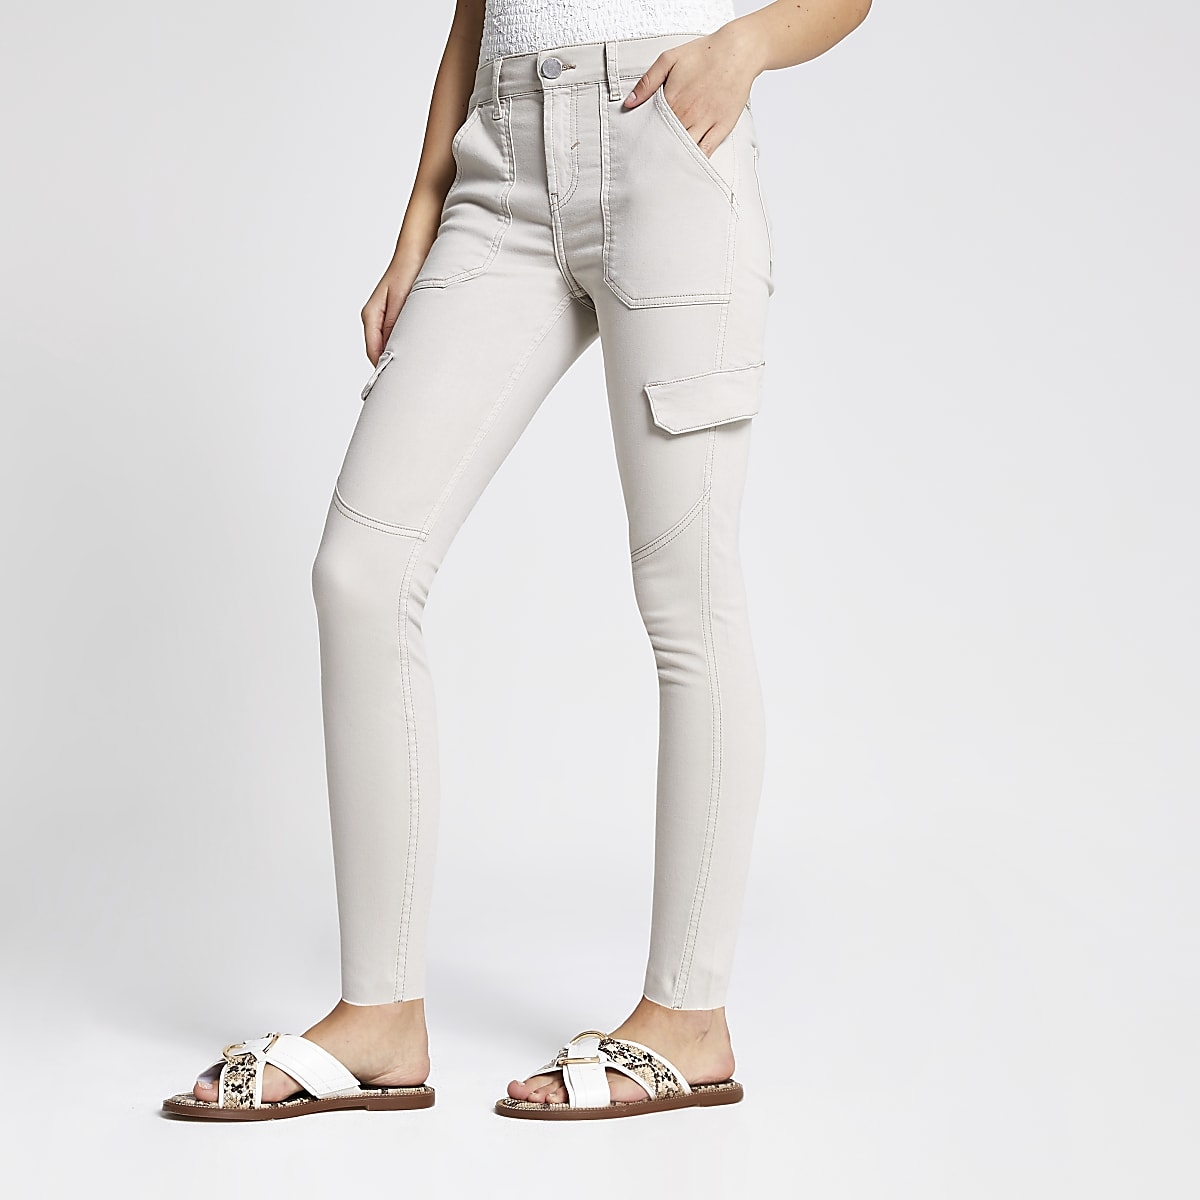 Amelie - Lichtbeige superskinny utility jeans